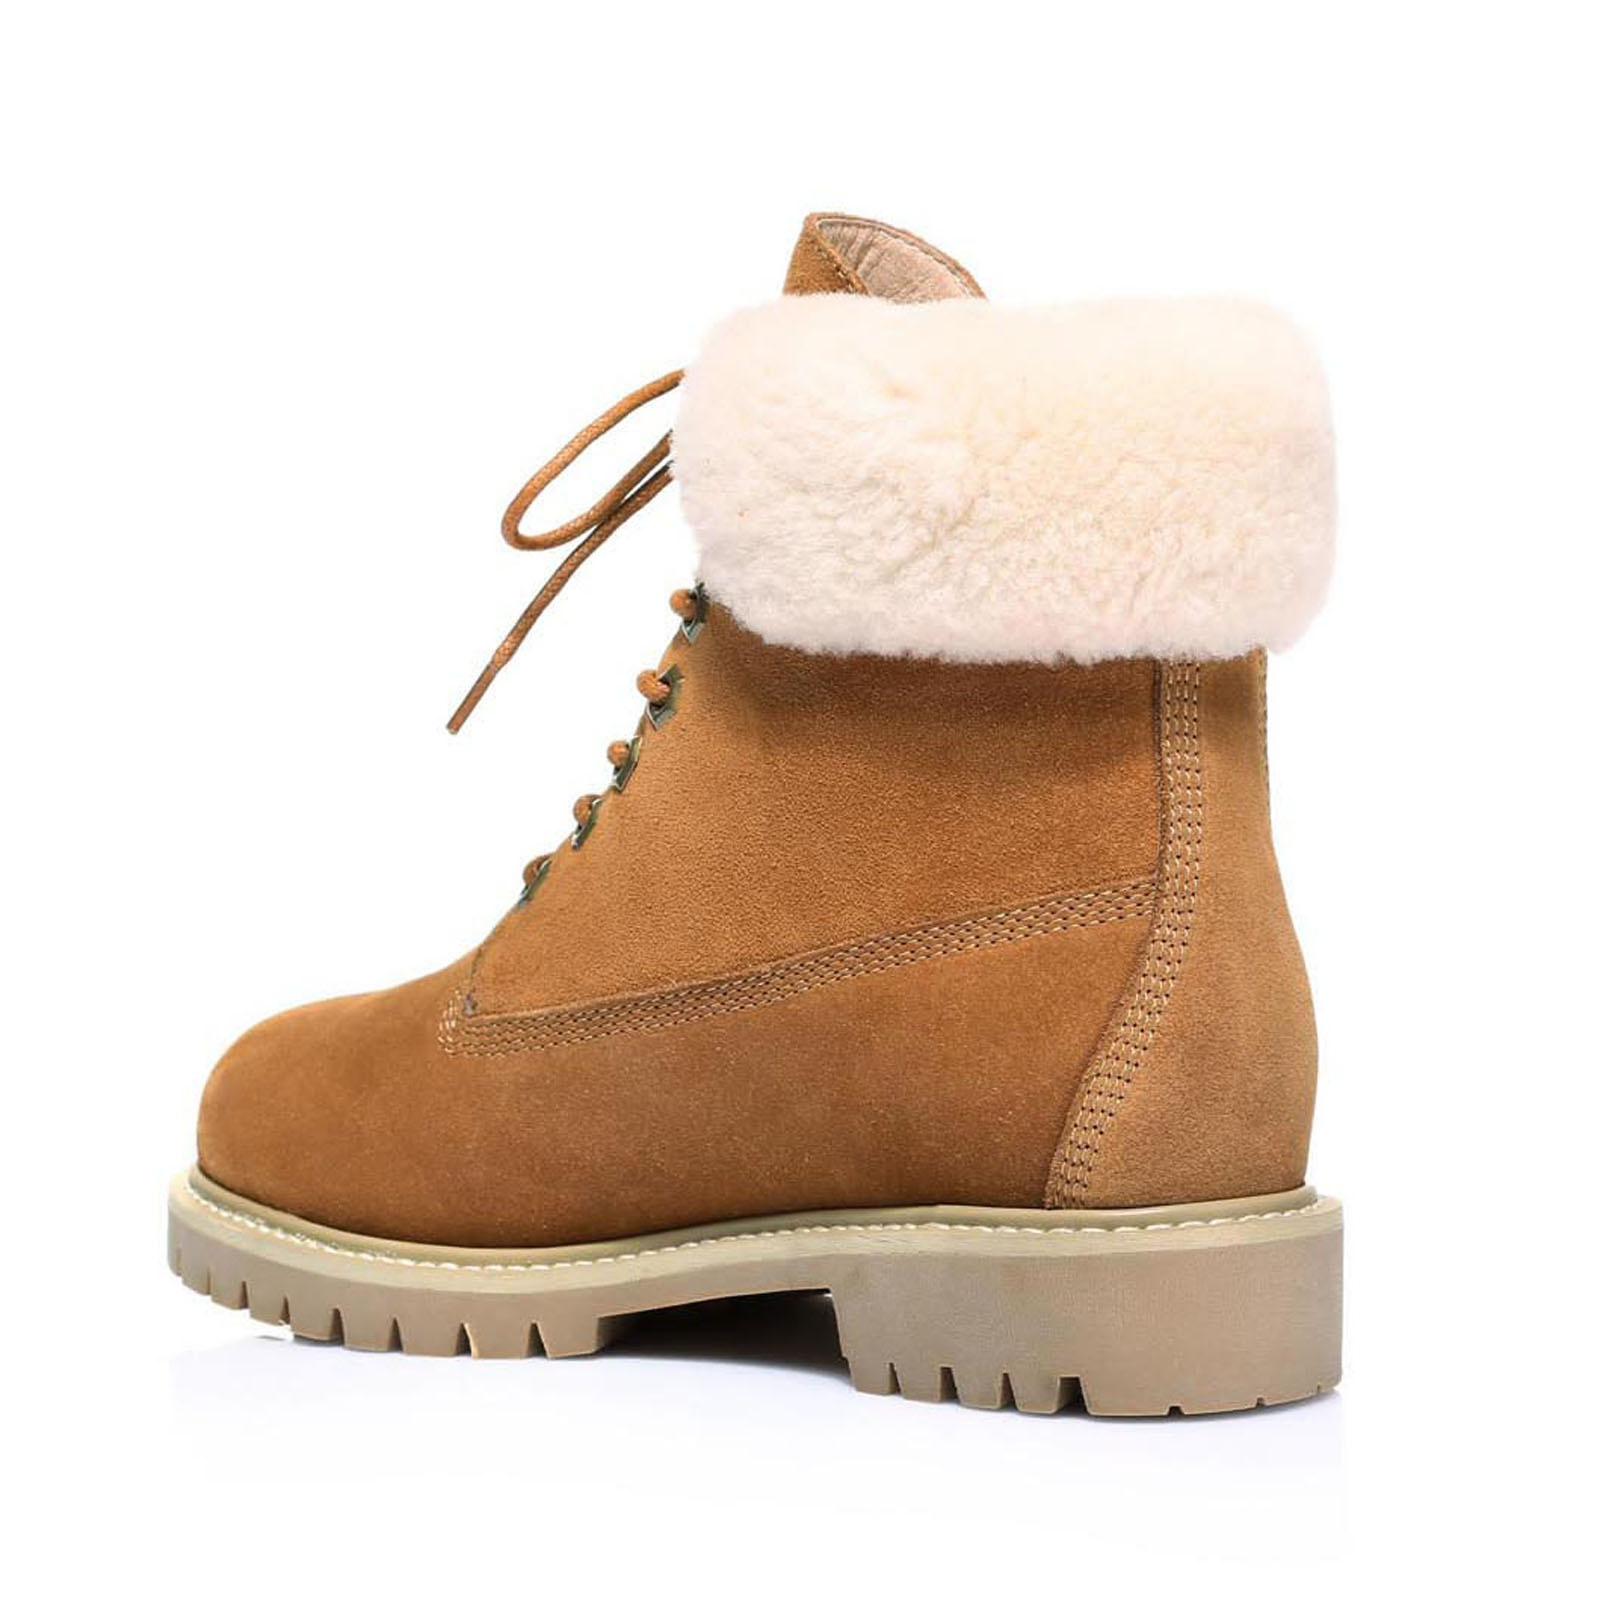 UGG-Boots-Australian-wool-Genuine-Hope-Ladies-Fashion-with-Front-Lace-lining thumbnail 7